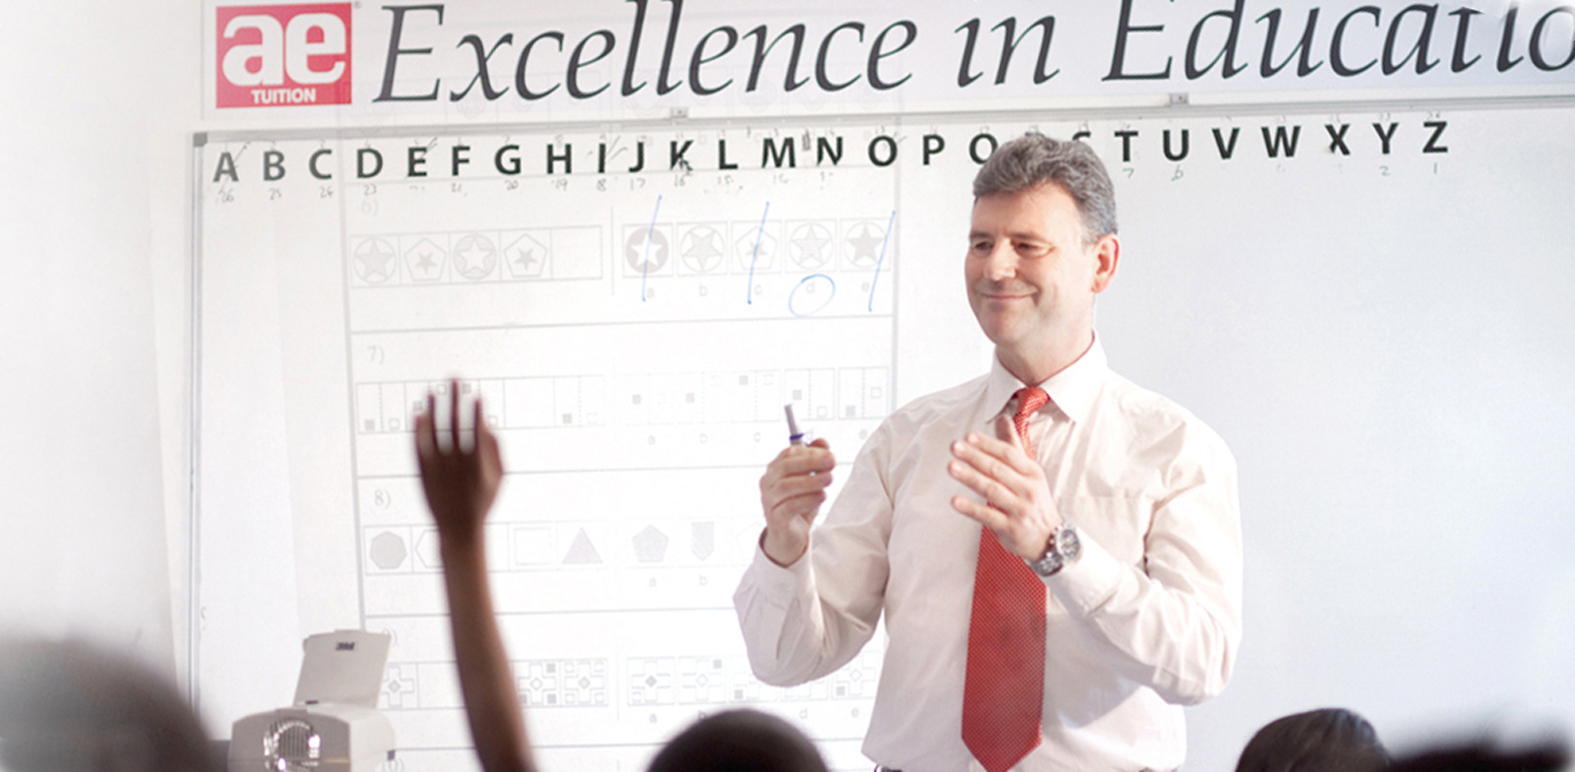 Dr Stephen Curran teaching at his current tuition centre in Slough. He is about to open a second tuition centre in the town to meet growing demand.